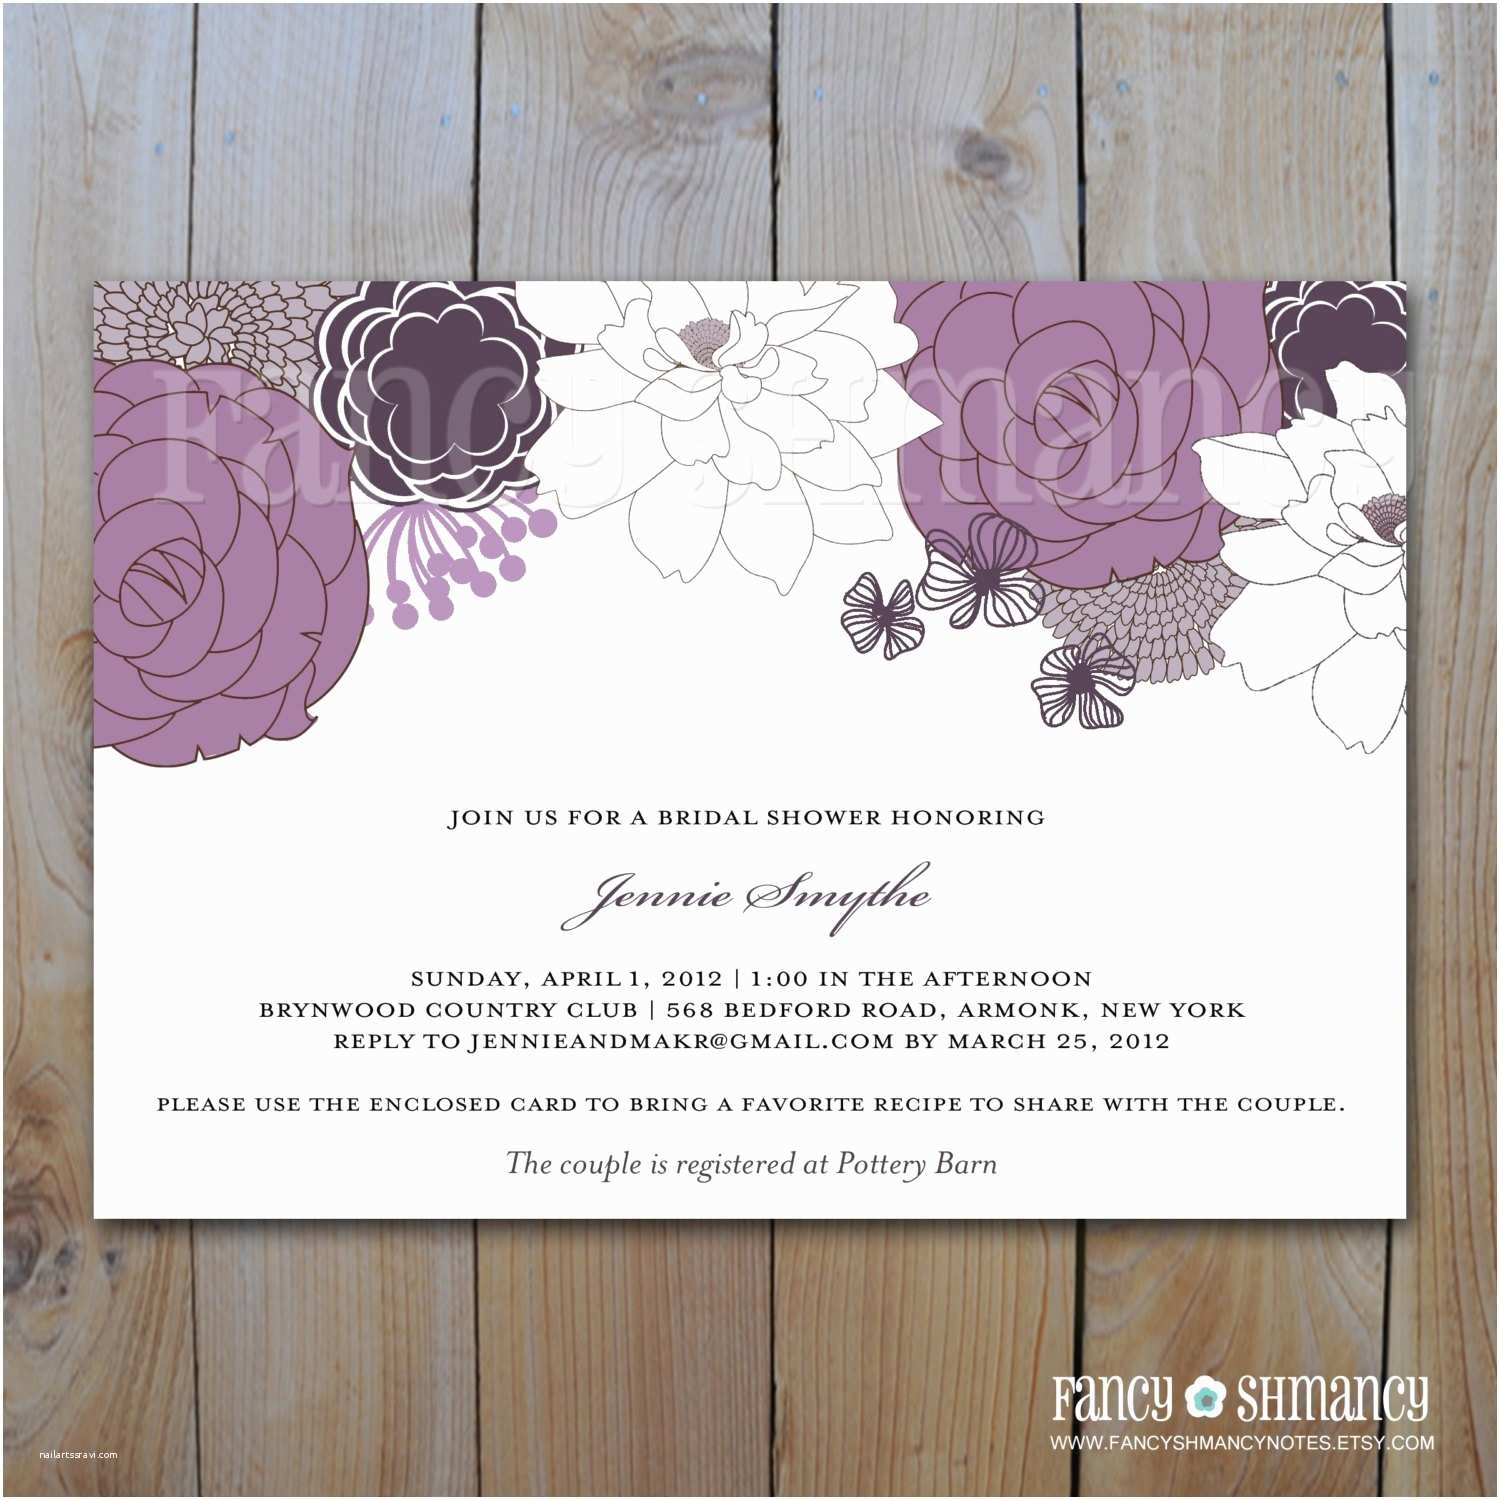 How to Word A Wedding Shower Invitation asking for Money Bridal Shower Invitations Bridal Shower Invitations